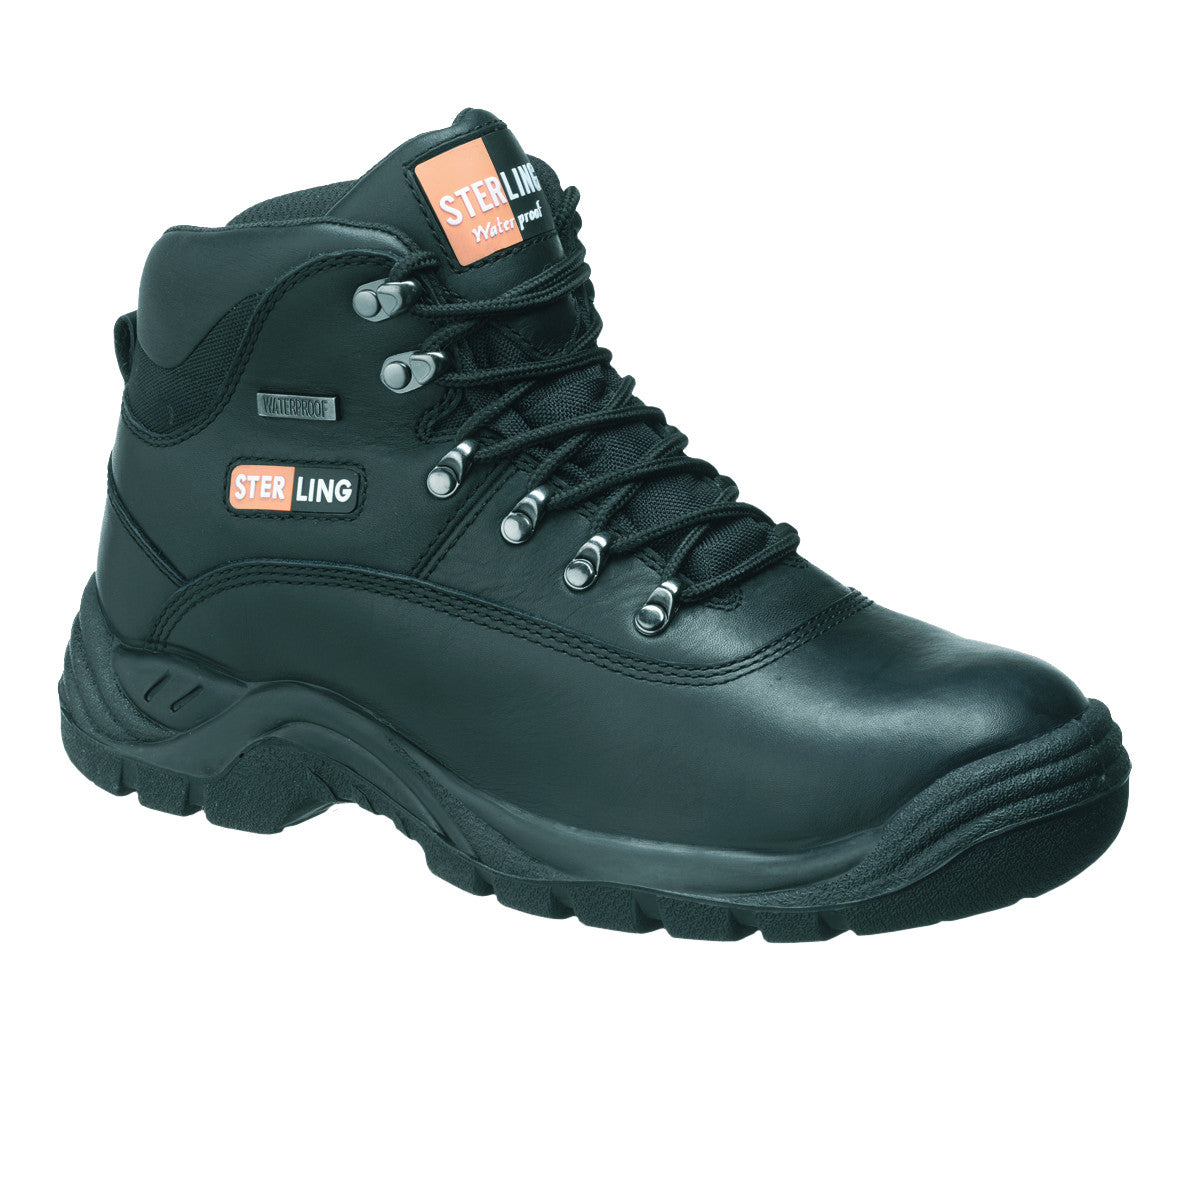 Safety Boot - peterdrew.com